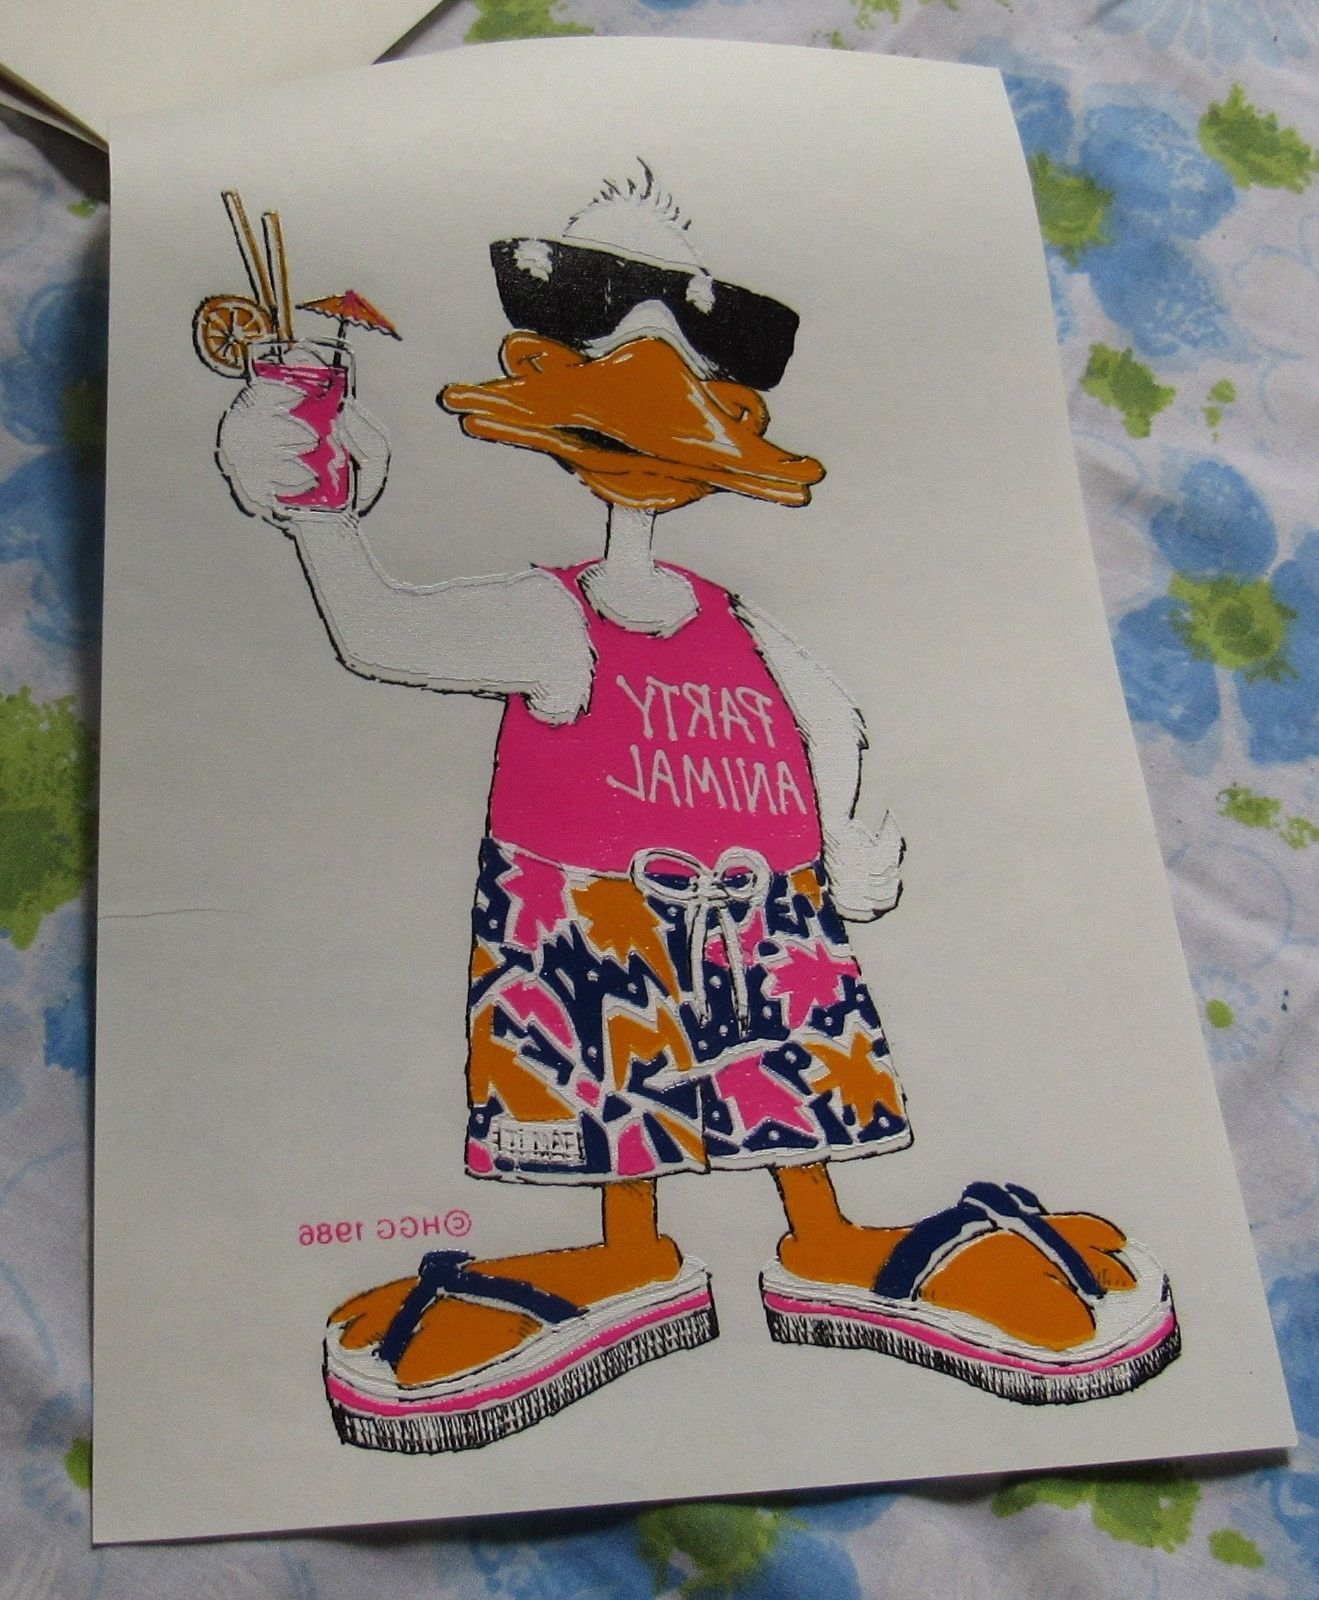 VTG 1986 HGG Party Animal Duck in Shorts T-shirt Iron On Heat Transfer 80s